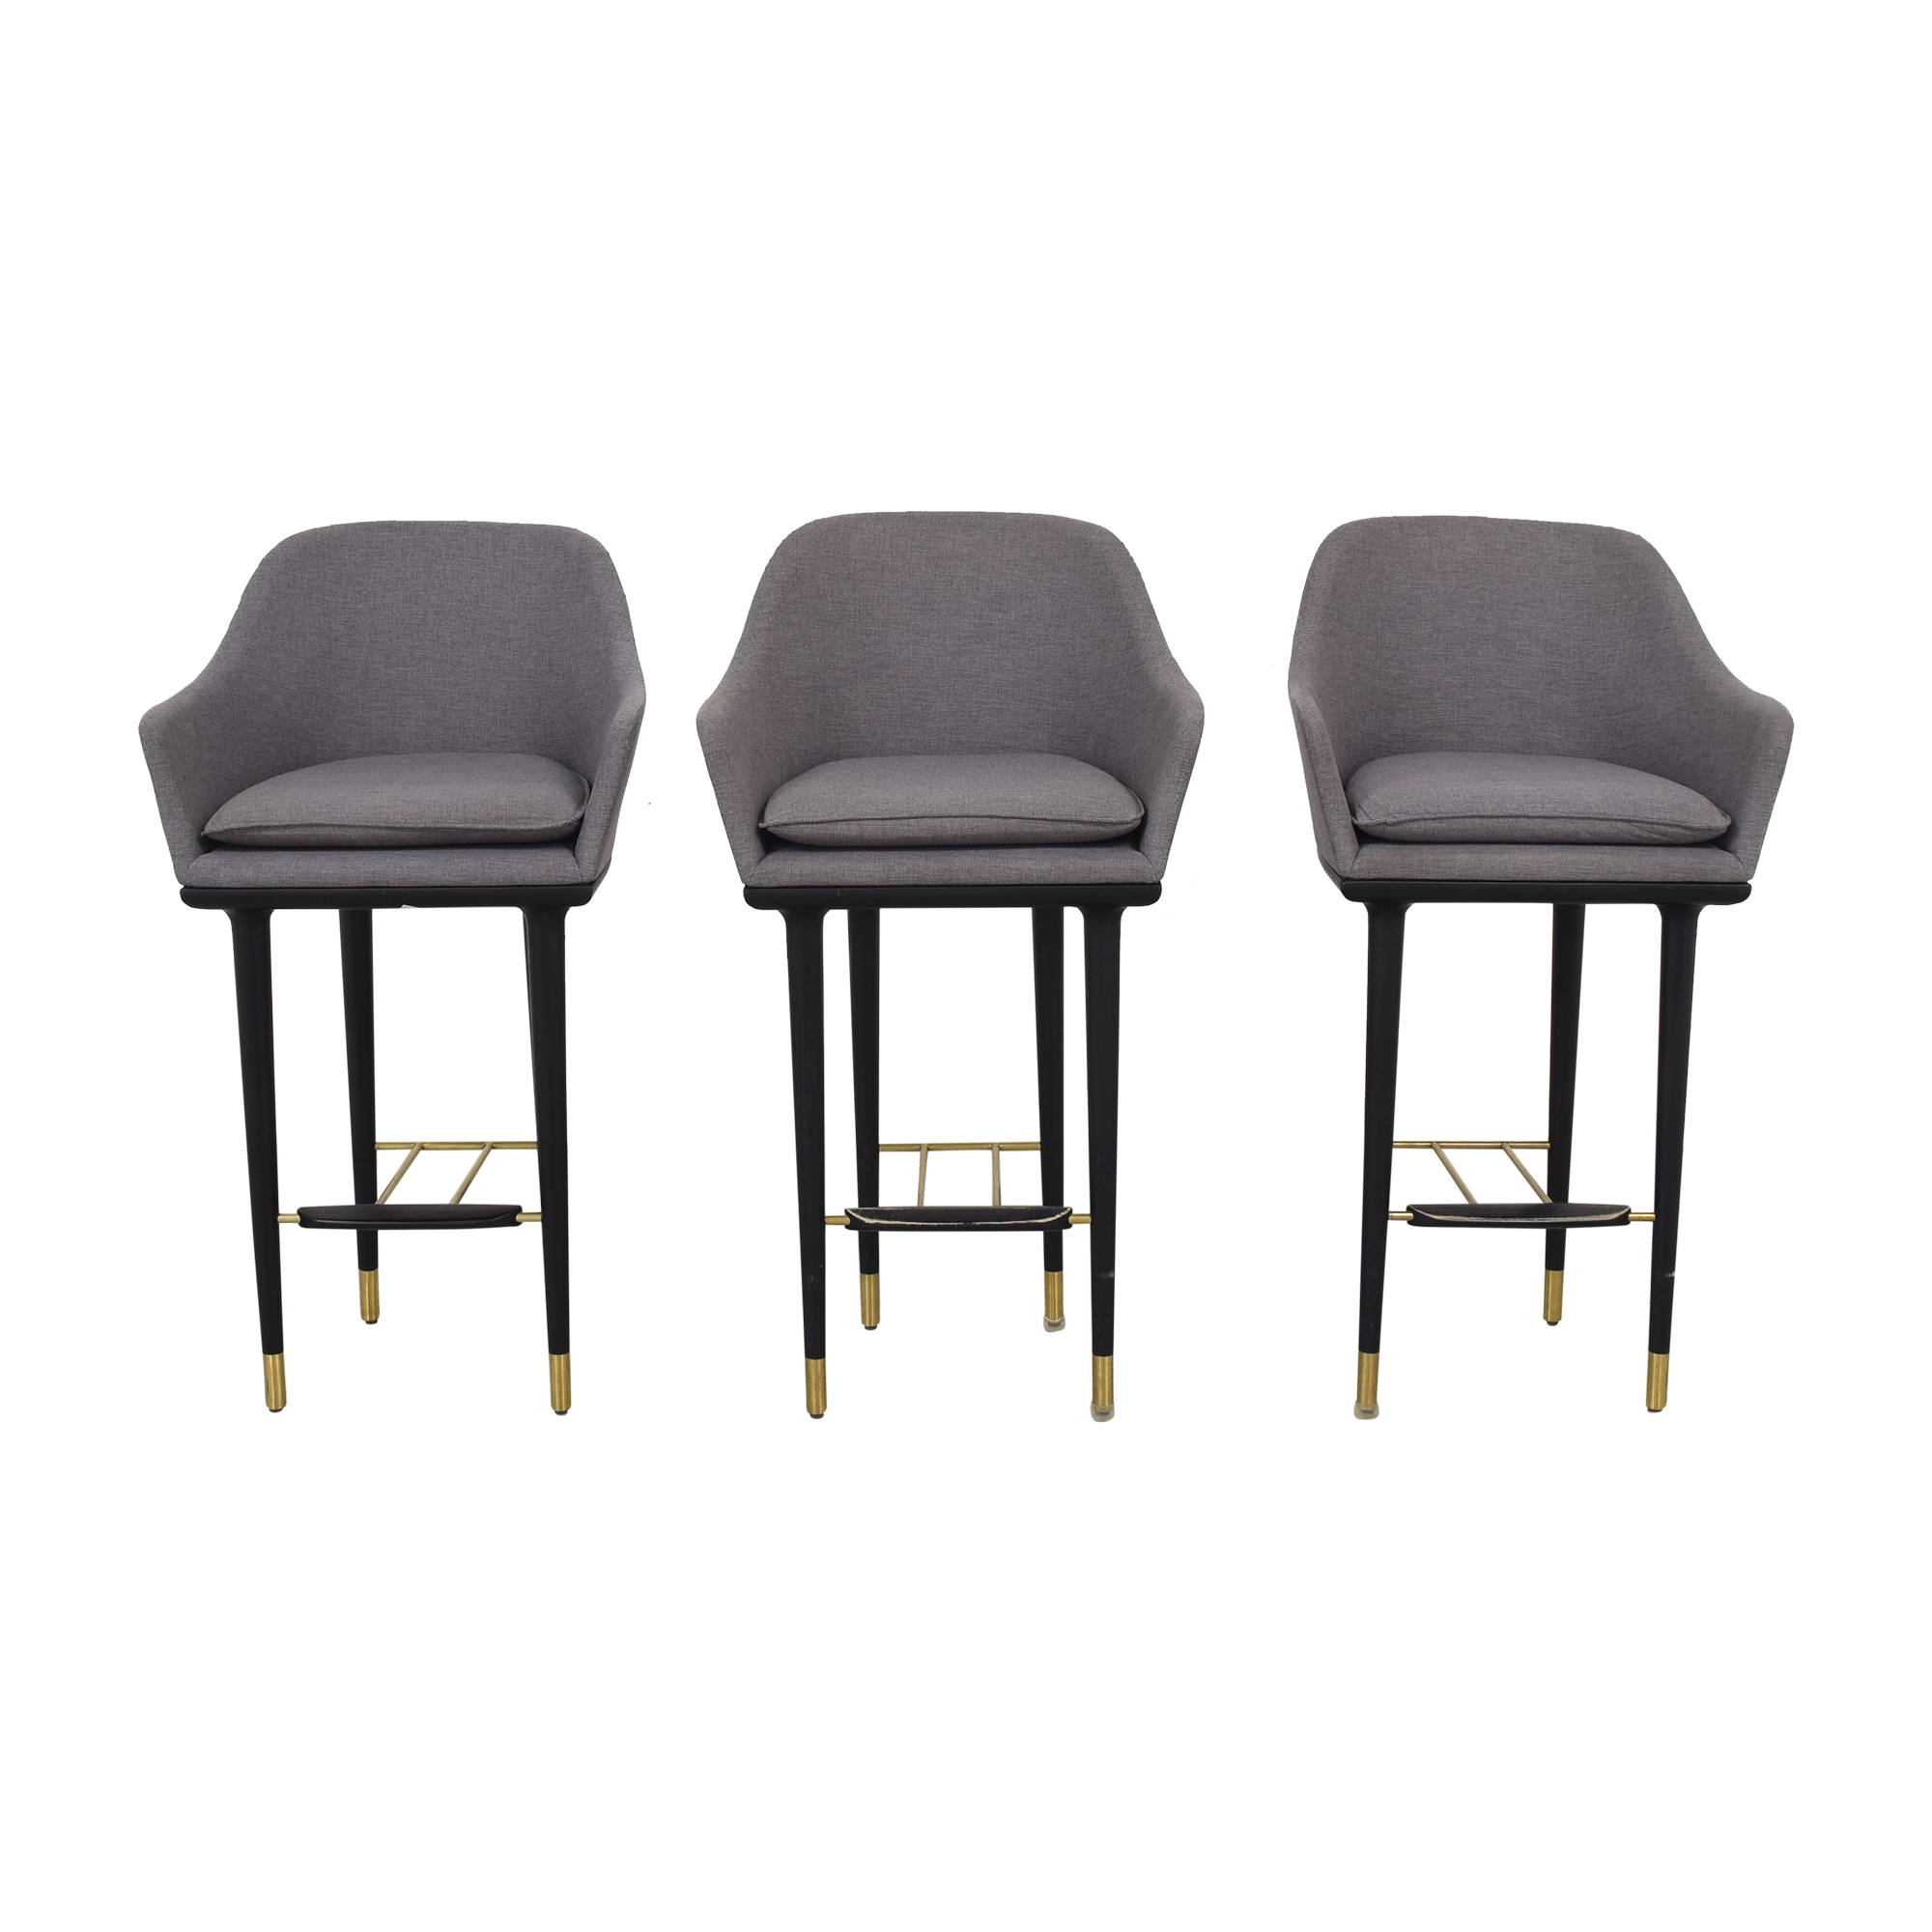 Stellar Works Stellar Works Lunar Bar Chairs for sale